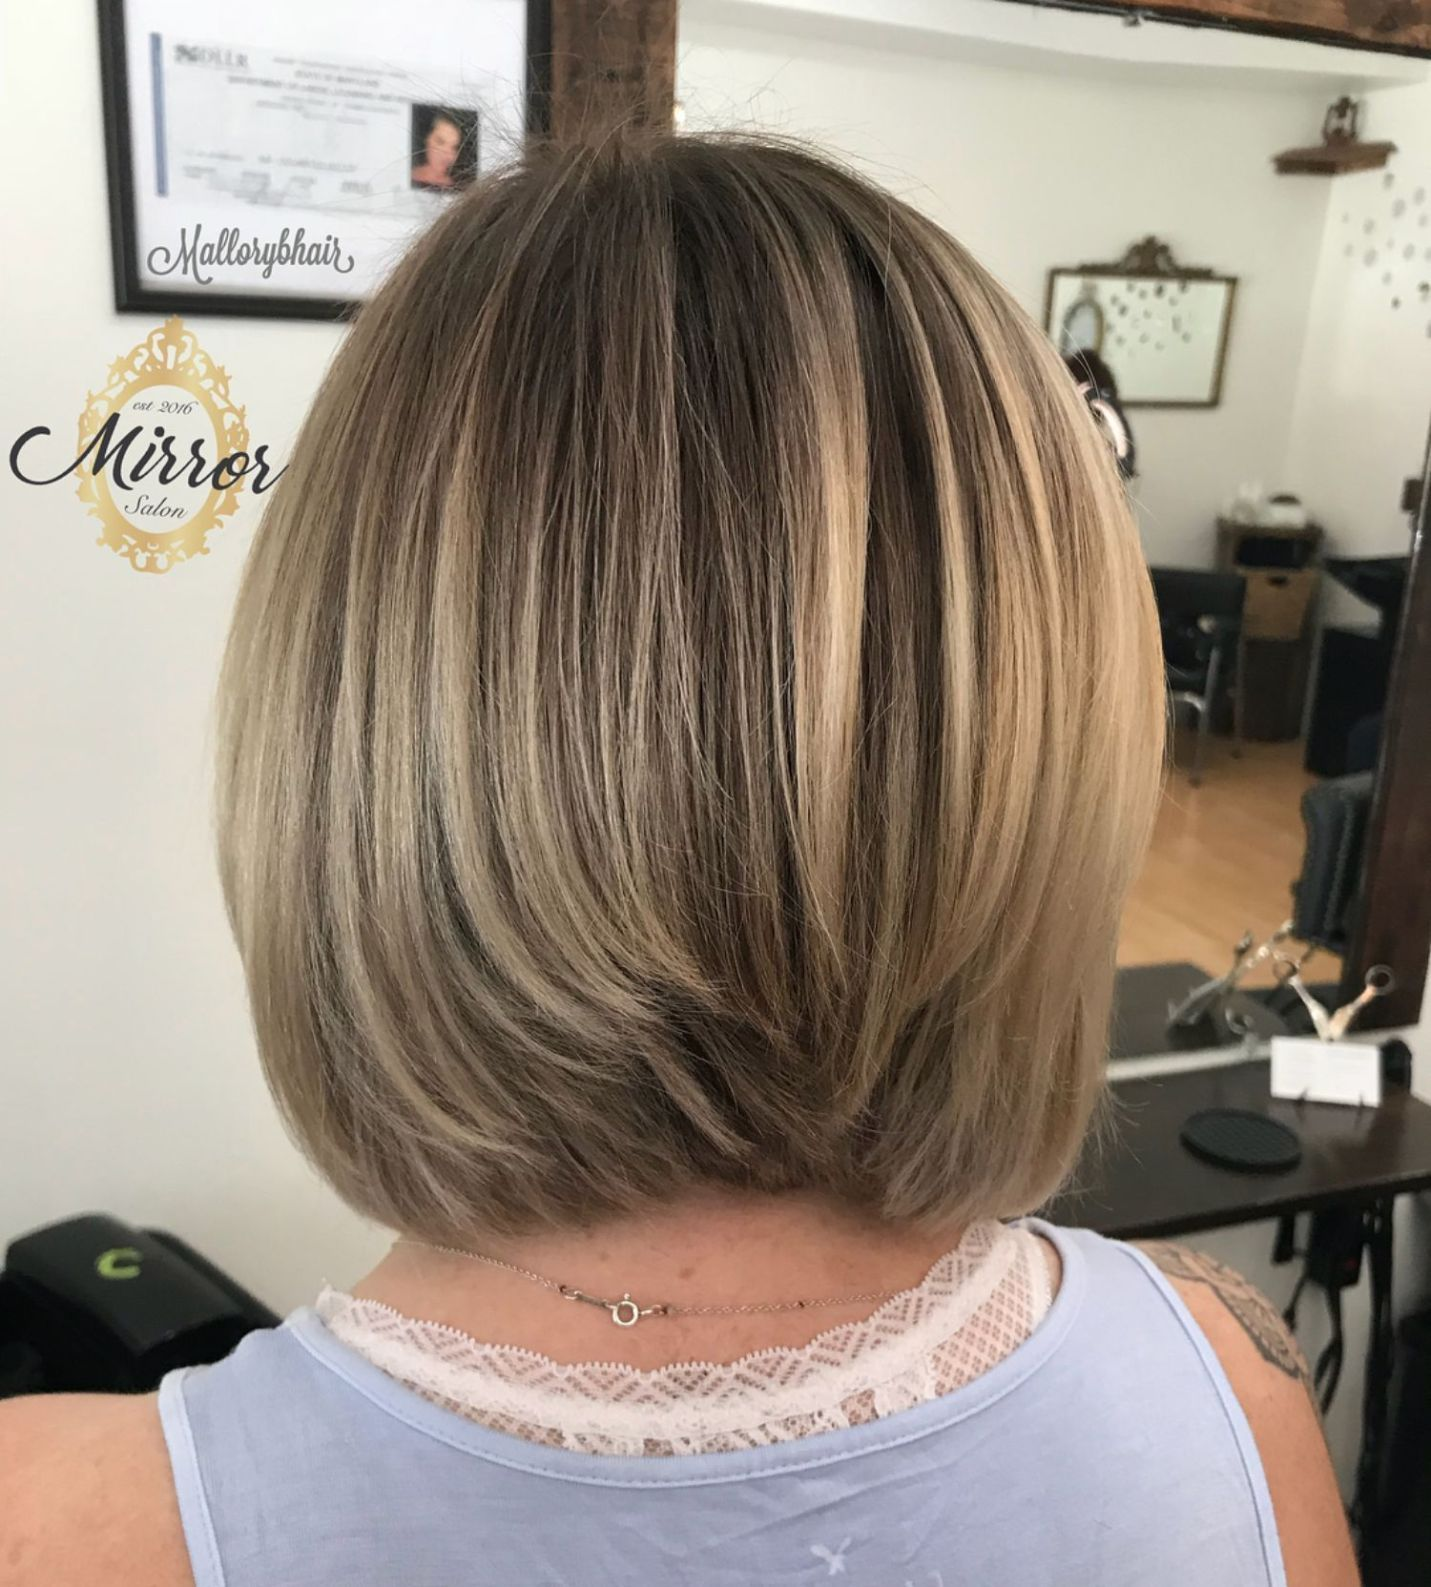 Longer Stacked Bob For Straight Hair Stacked Bob Haircut Inverted Bob Haircuts Bobs Haircuts